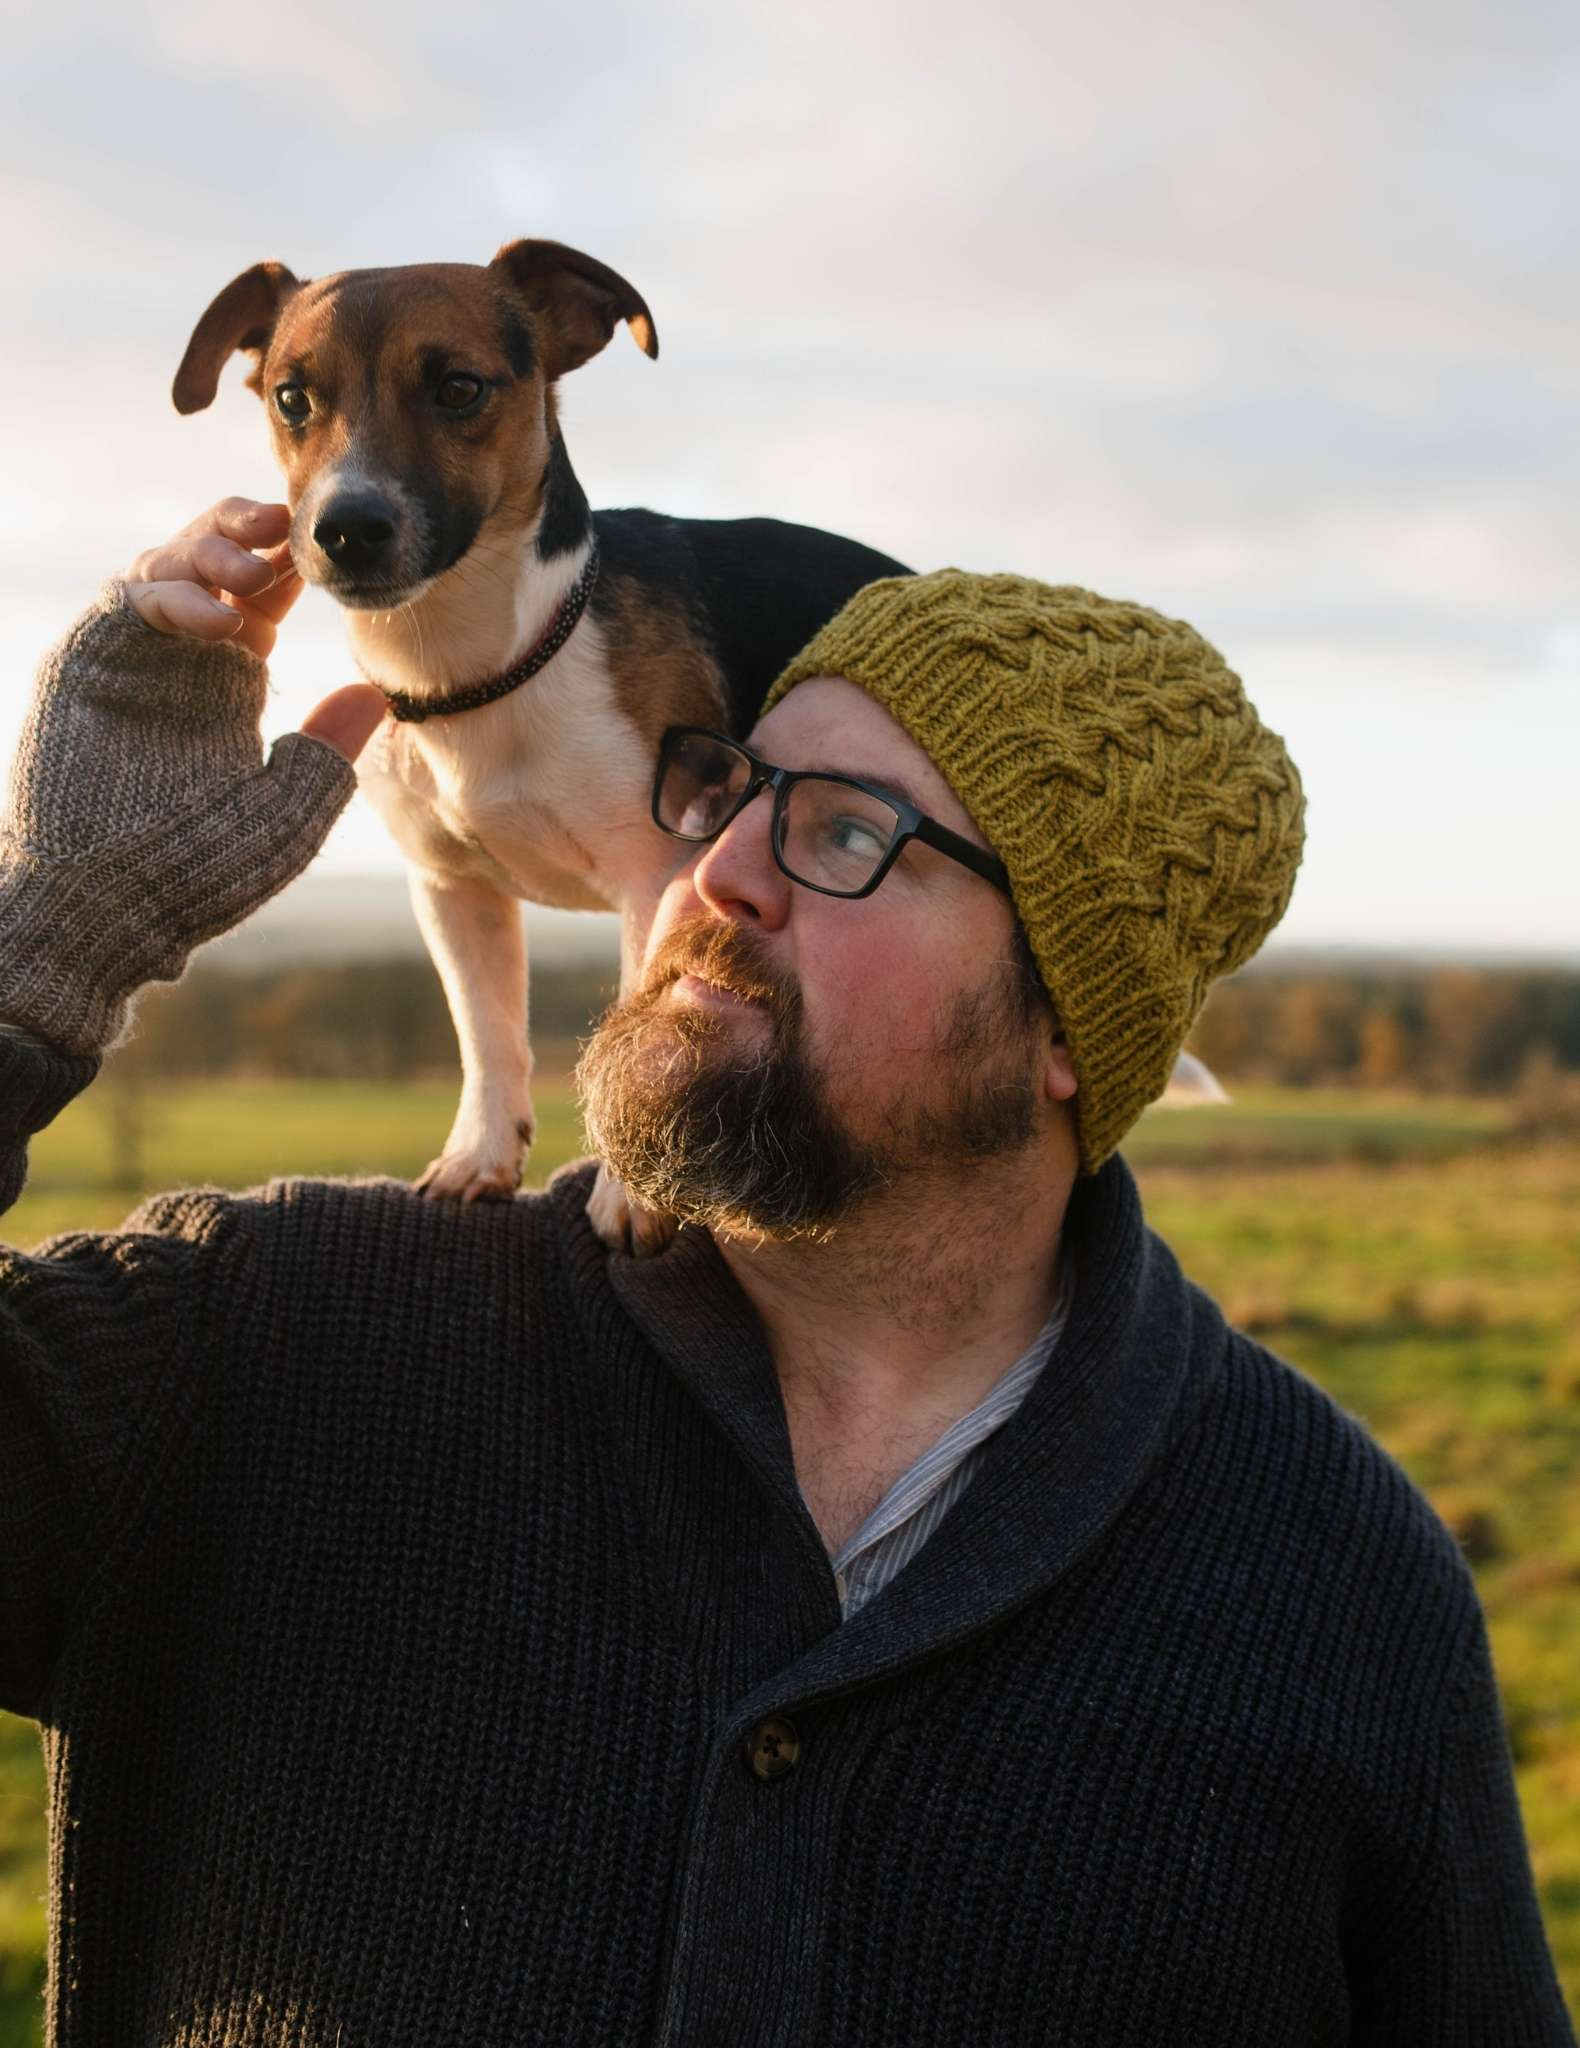 A white man with a beard and glasses stands in a field wearing a cabled green beanie hat. There is a small brown, white and dark dog standing across his shoulders and he has his hand raised towards it.